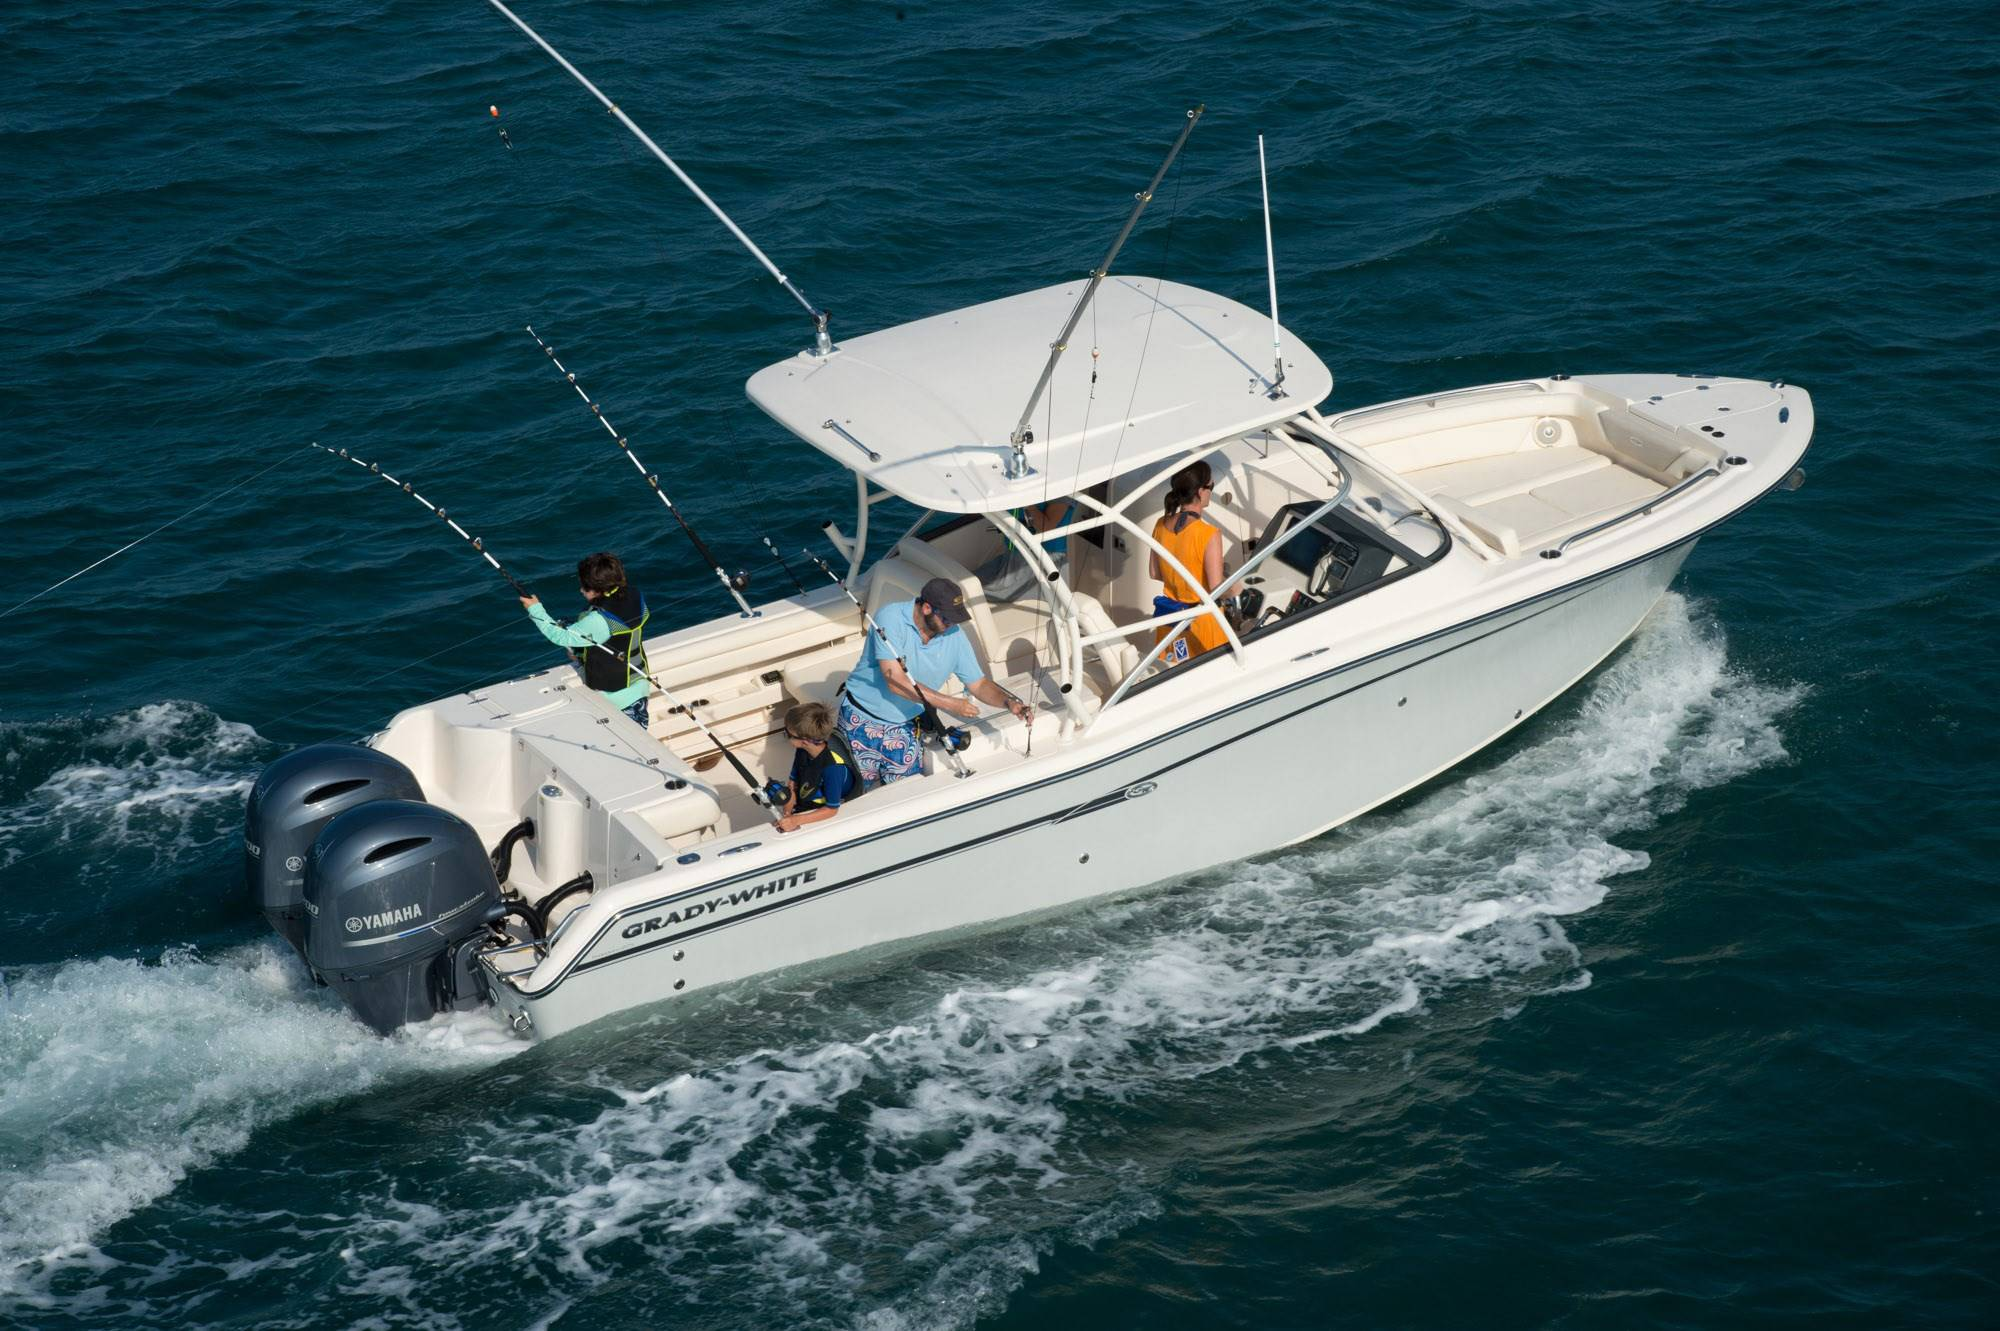 A family enjoys fishing on a Grady-White dual console boat.